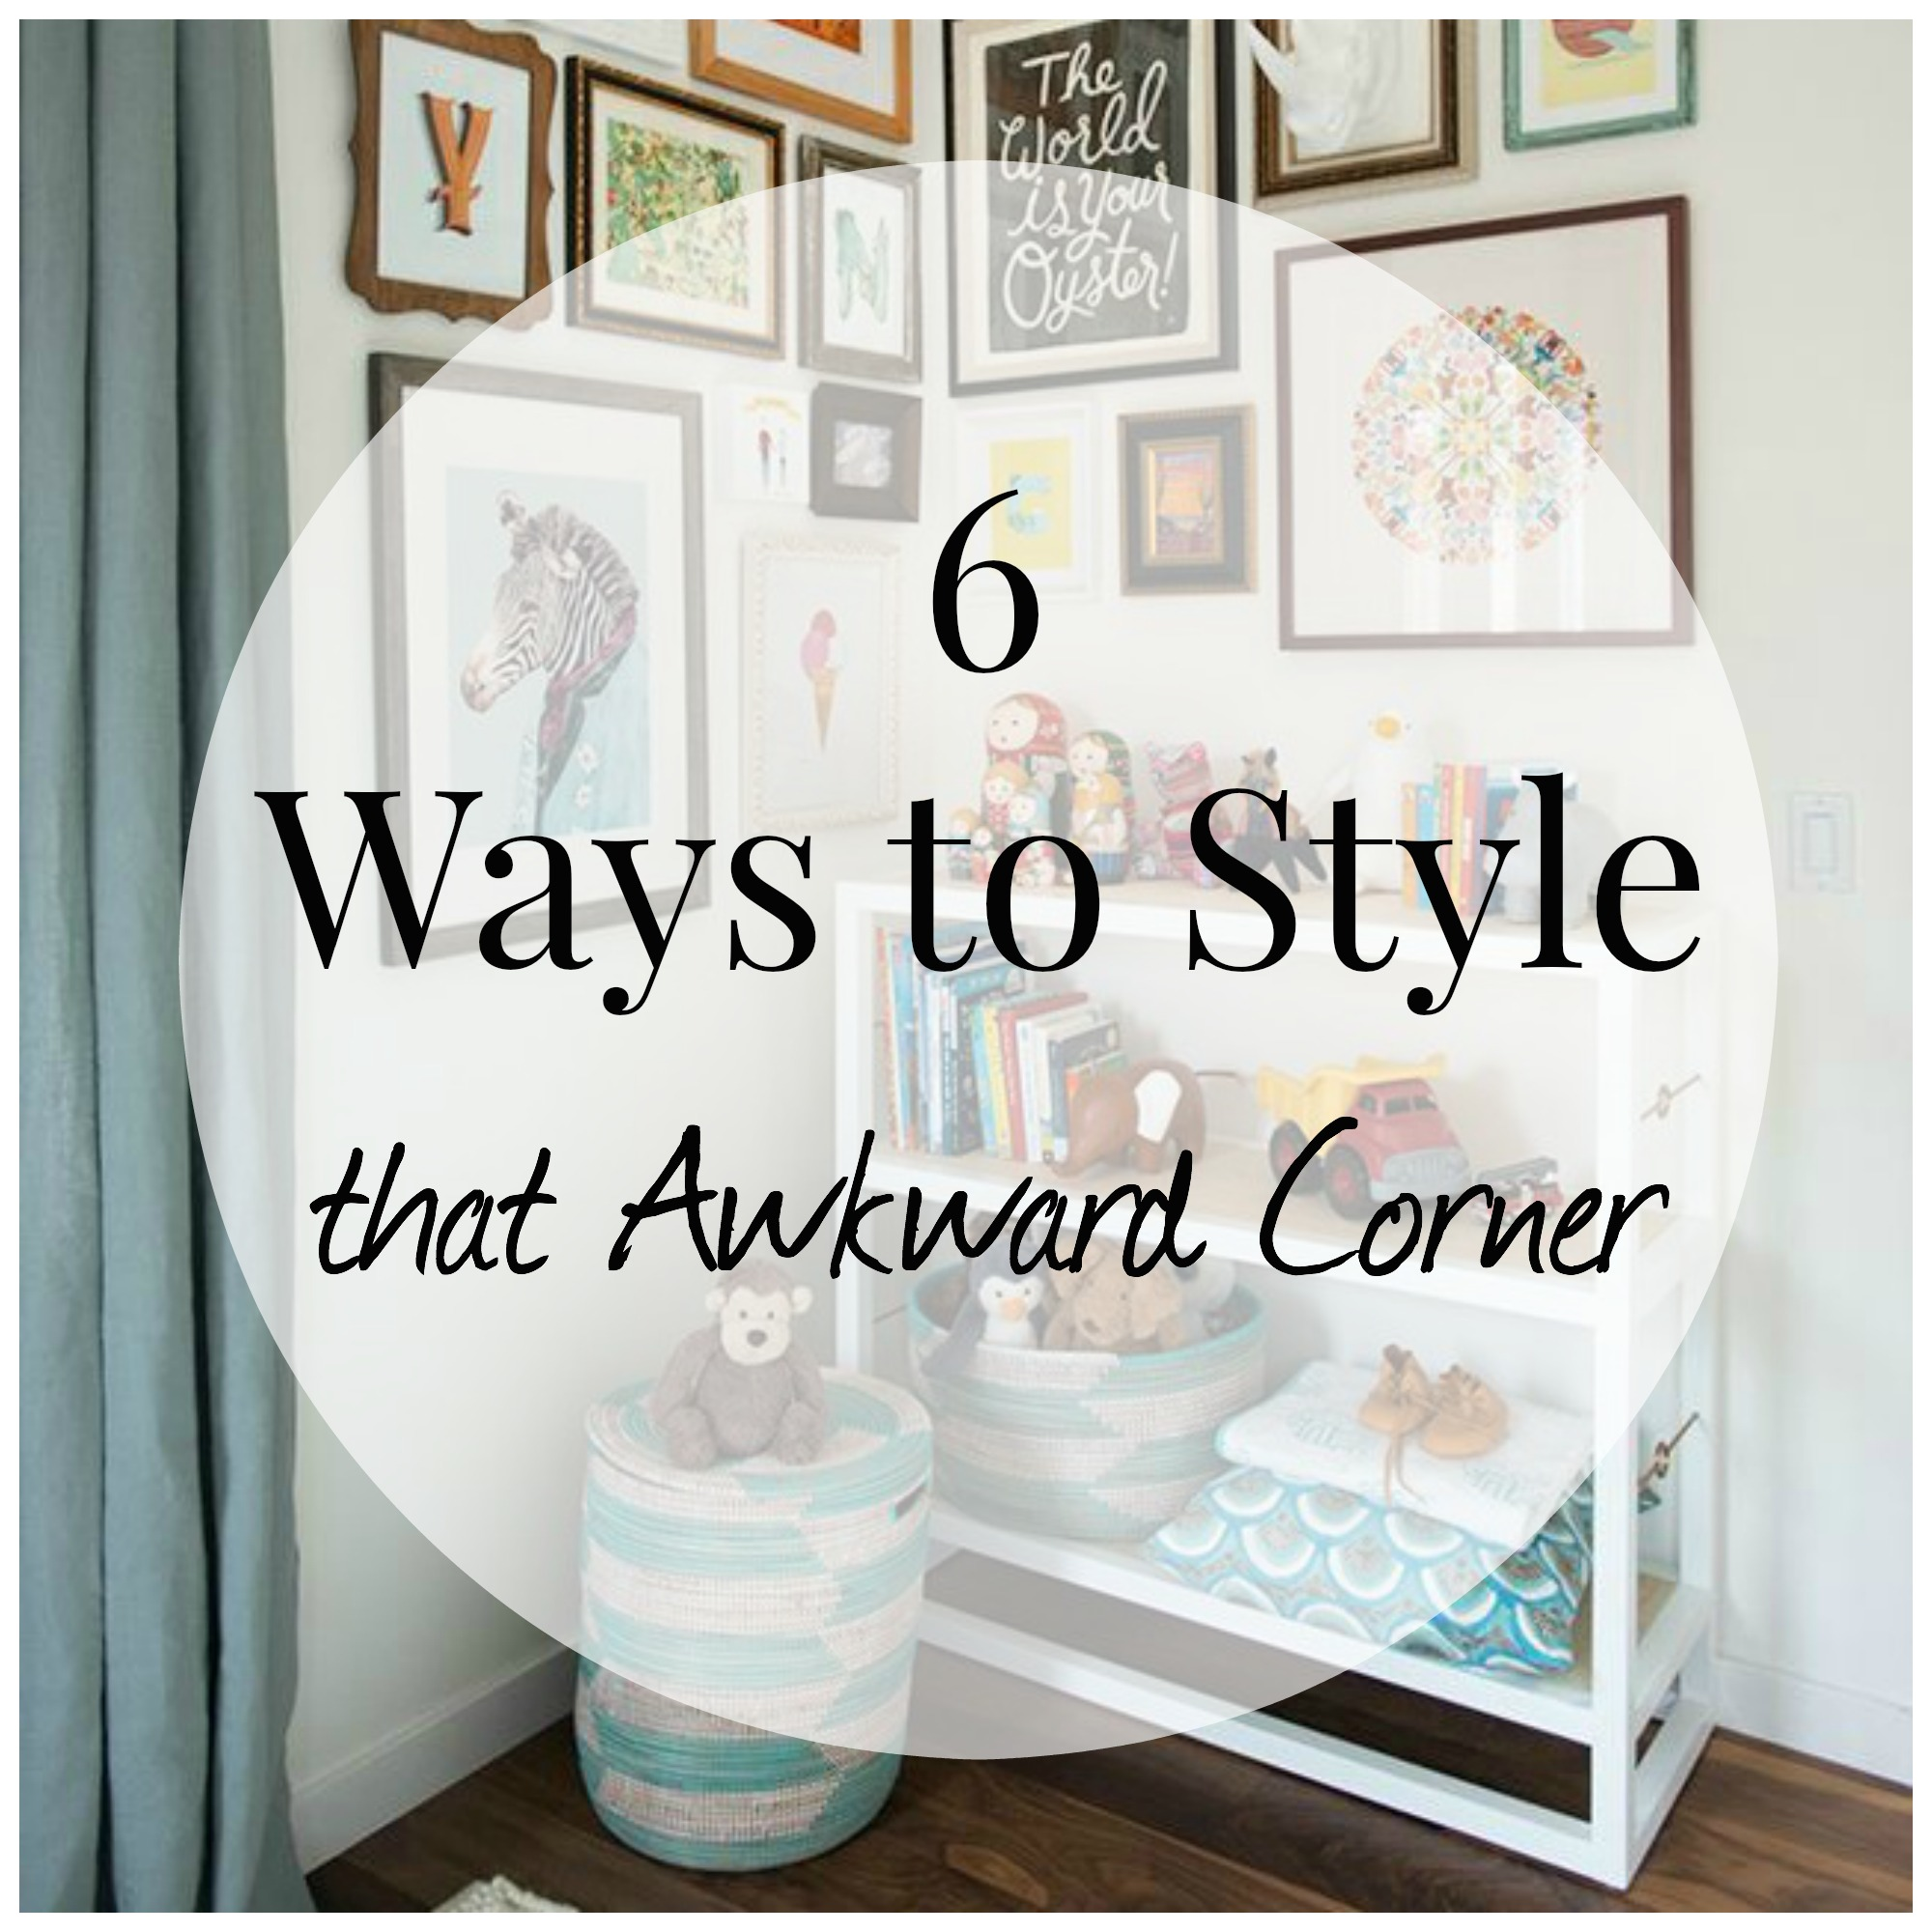 6 Ways to Style that Awkward Corner